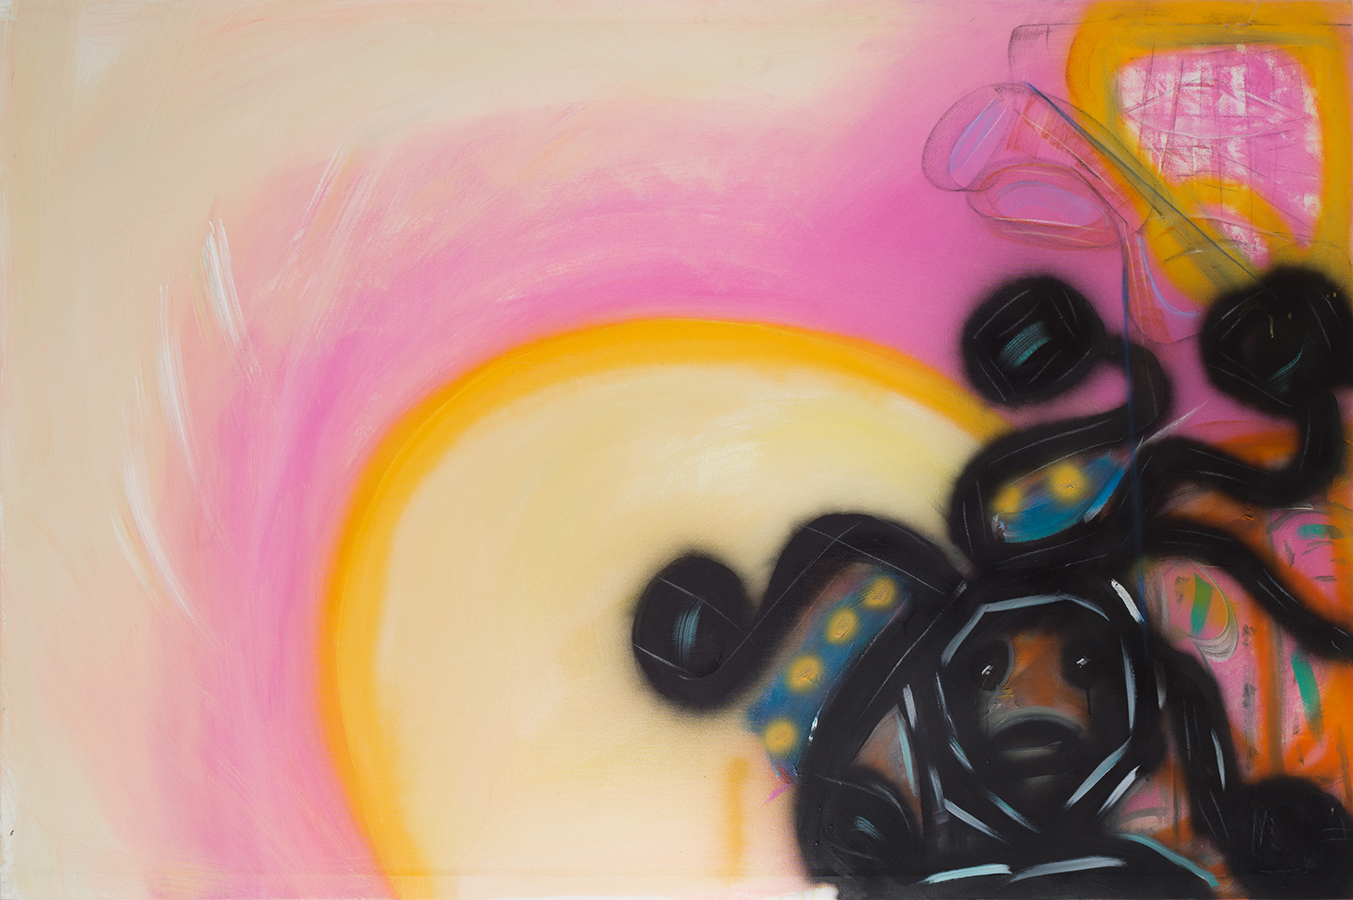 Acrylic, spray paint, and pastel on canvas. Signed, dated and titled on the reverse.